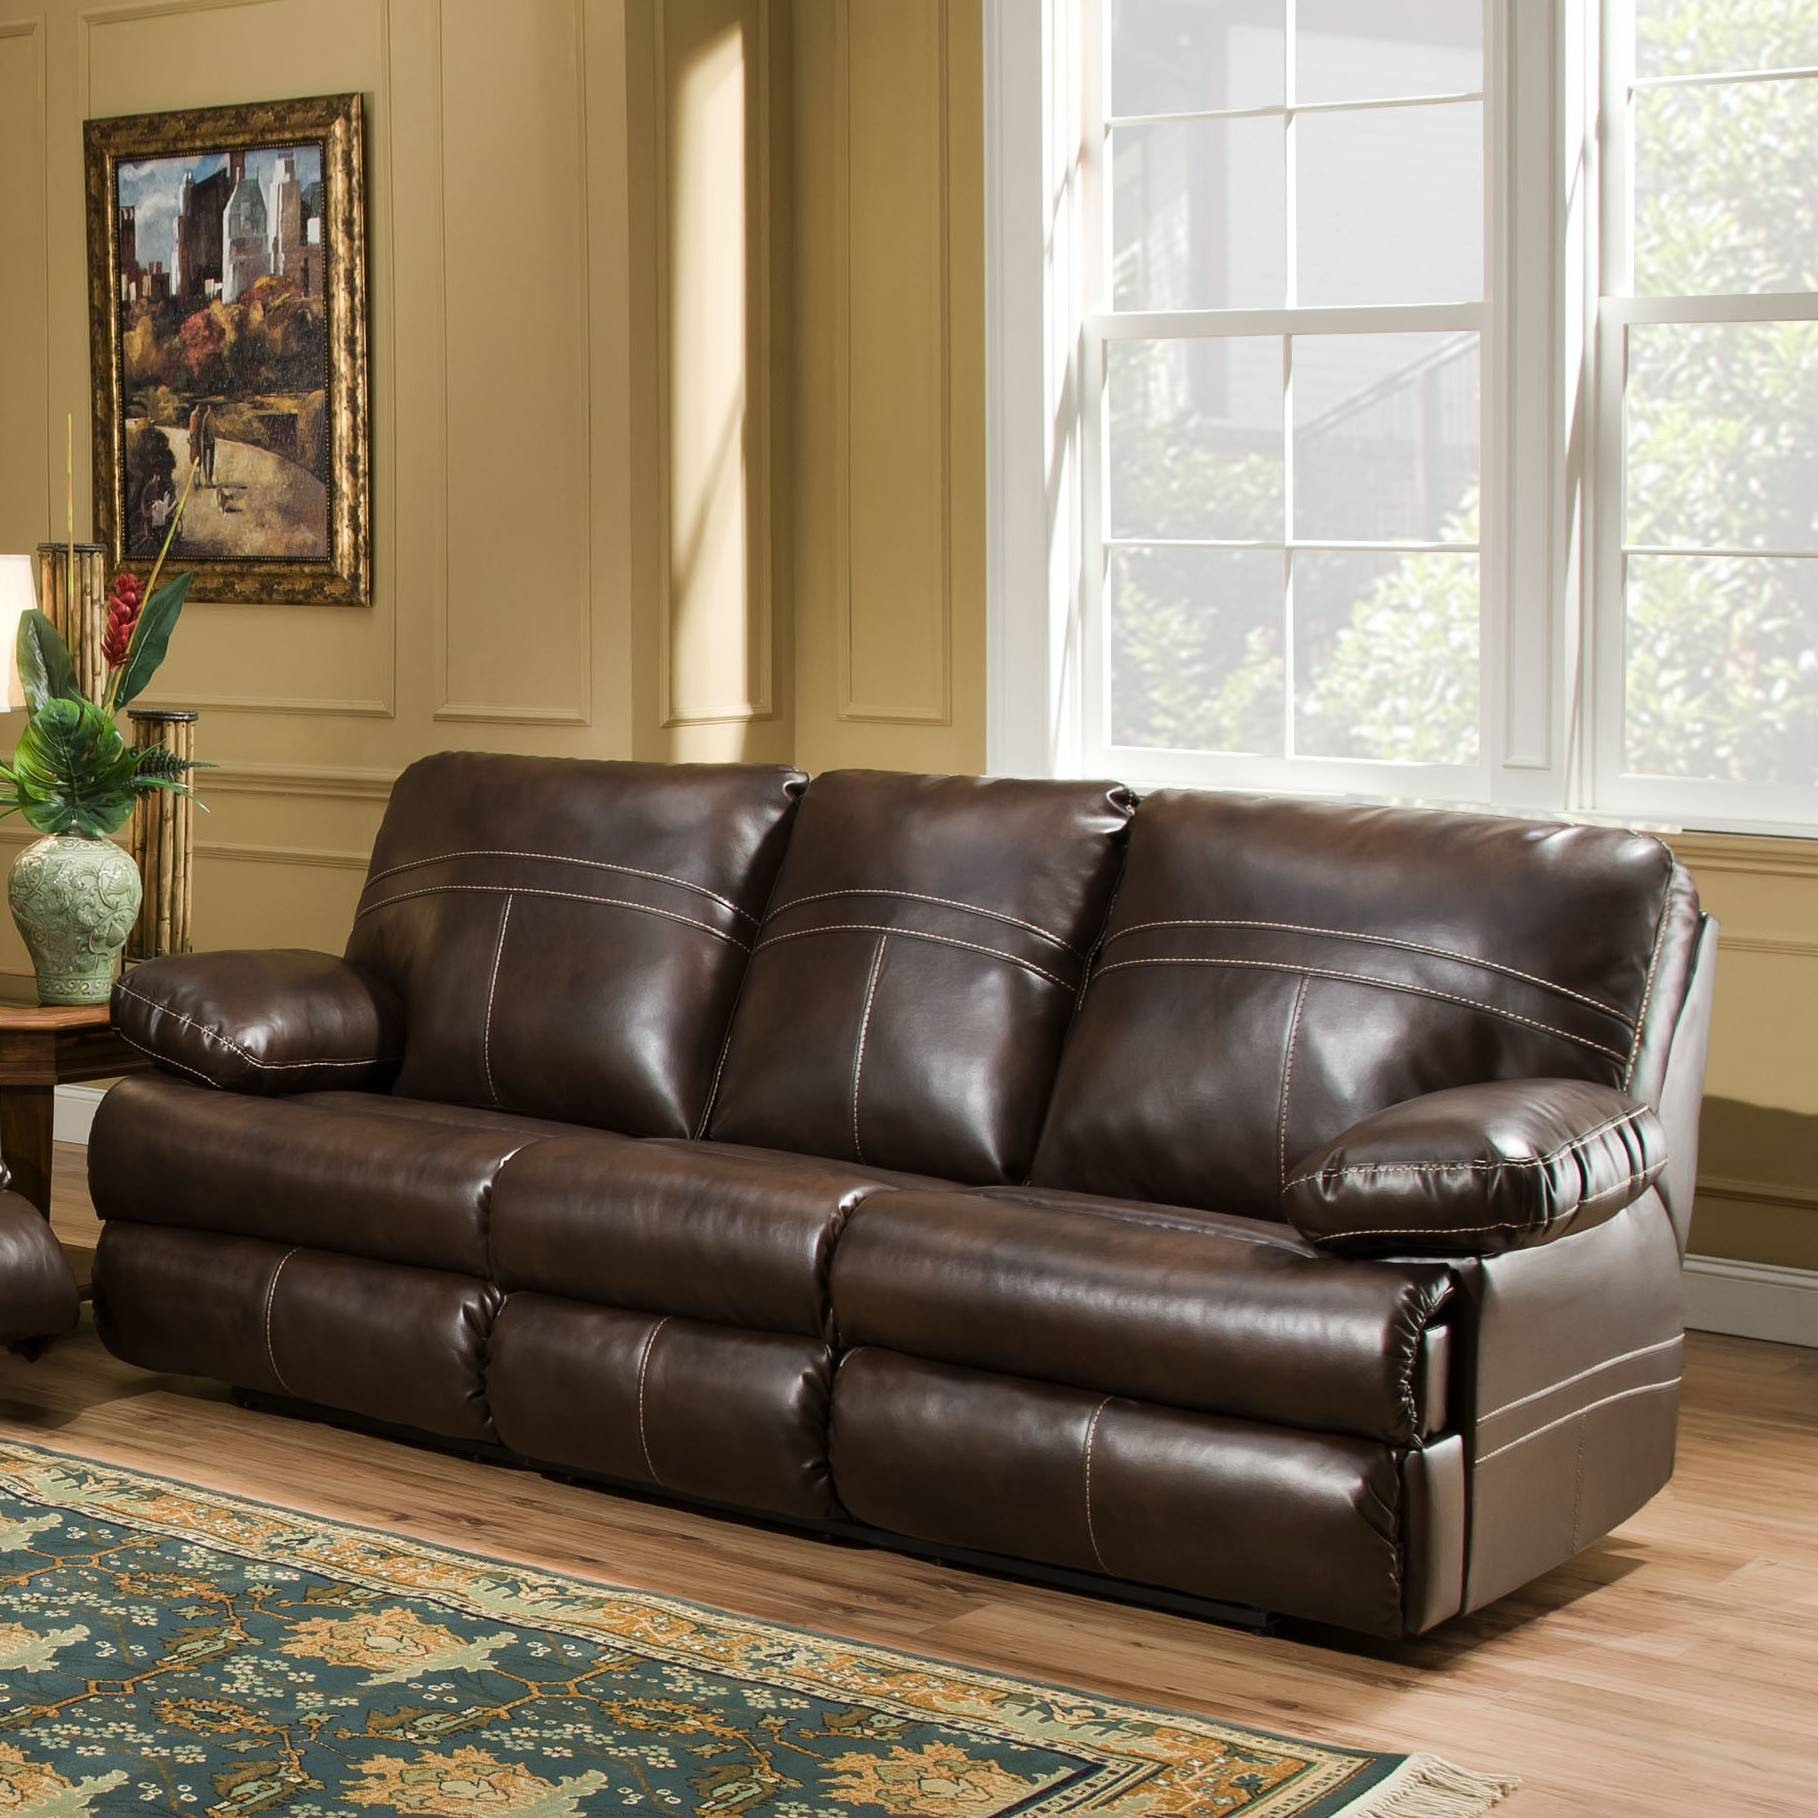 Simmons Miracle Brown Leather Sectional | Furniture And Interior with regard to Simmons Leather Sofas (Image 8 of 15)